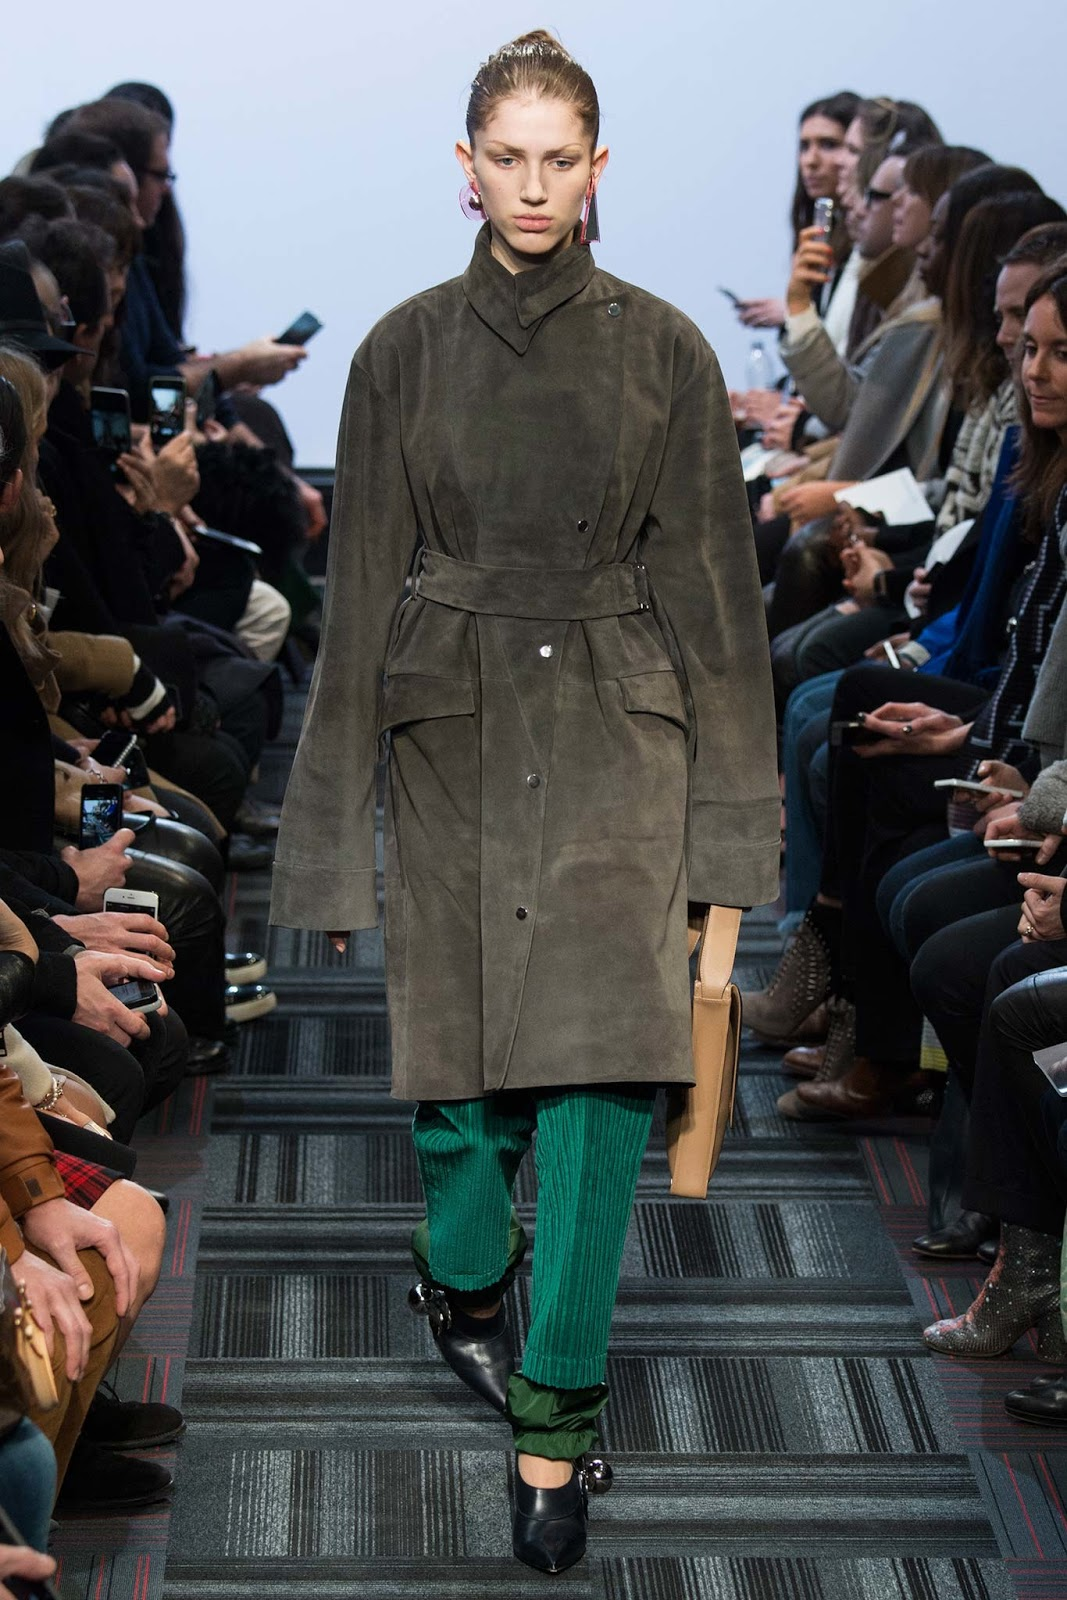 Trench coats as seen on a runway at JW Anderson Autumn/Winter 2015 via www.fashionedbylove.co.uk